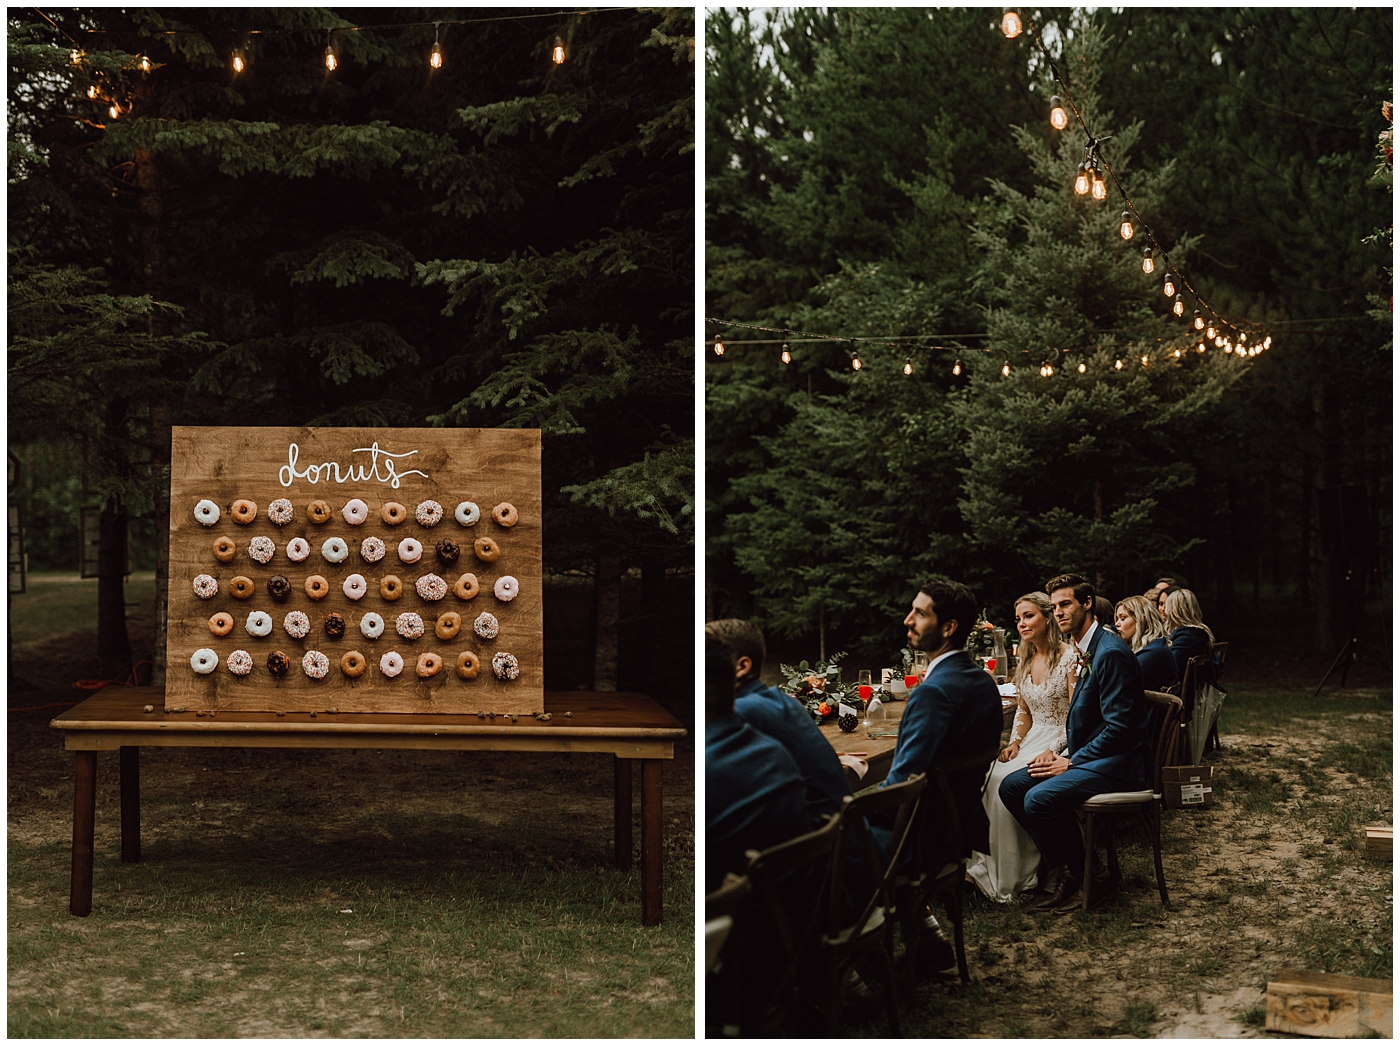 Winnipeg Outdoor Wedding in the Rain